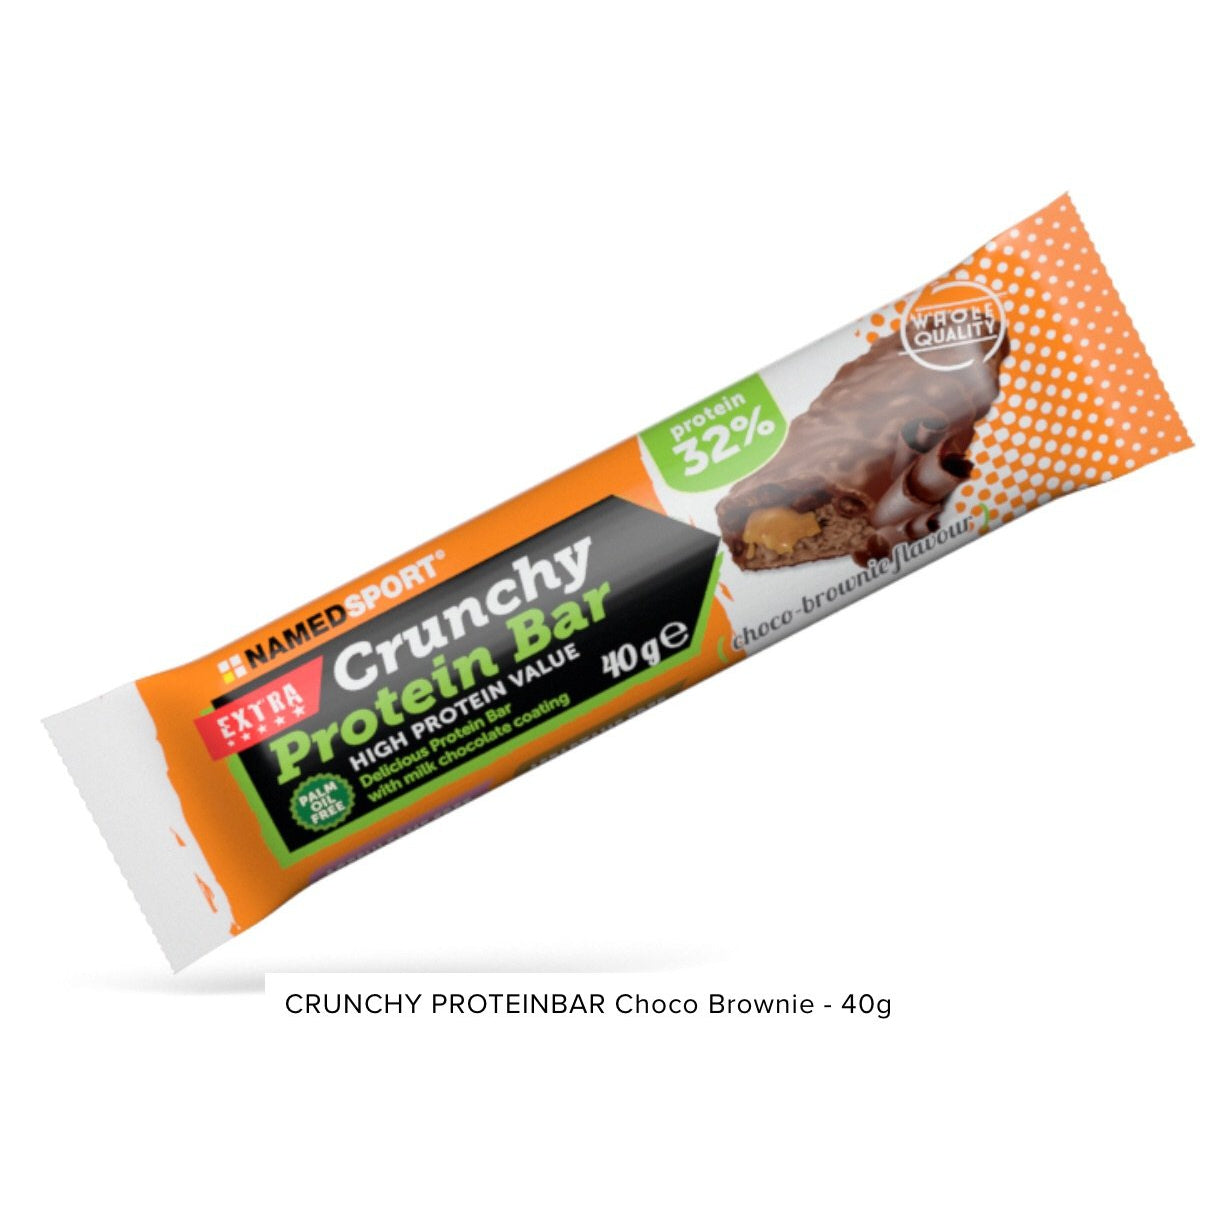 Crunchy Proteinbar Brownie Named Sport